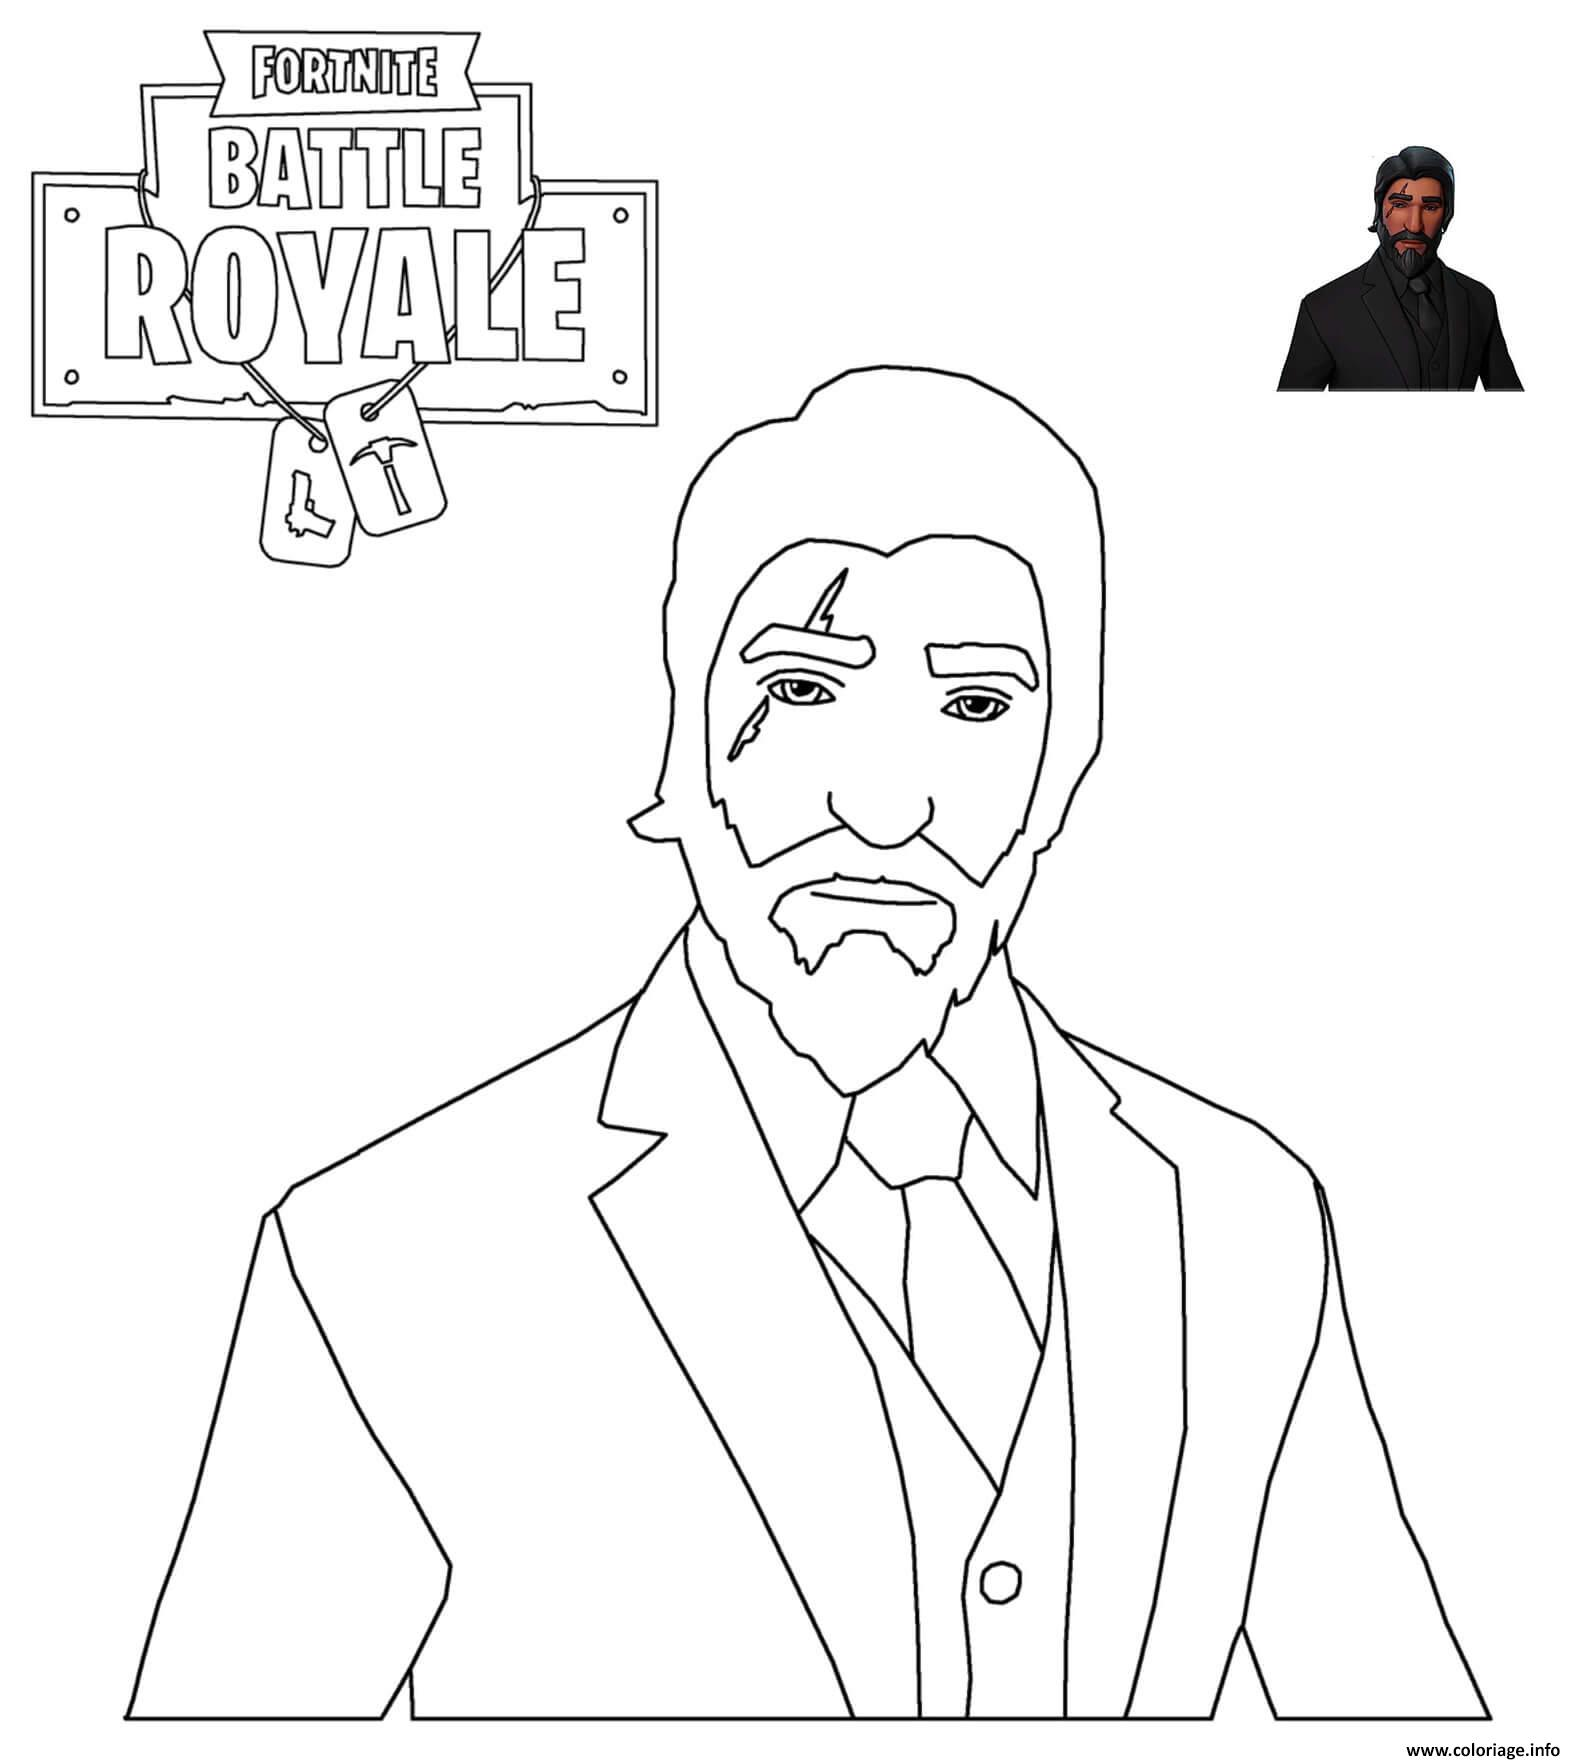 Coloriage Emoji Fortnite.Dessin Omega Fortnite A Colorier Fortnite Cheat Free V Bucks